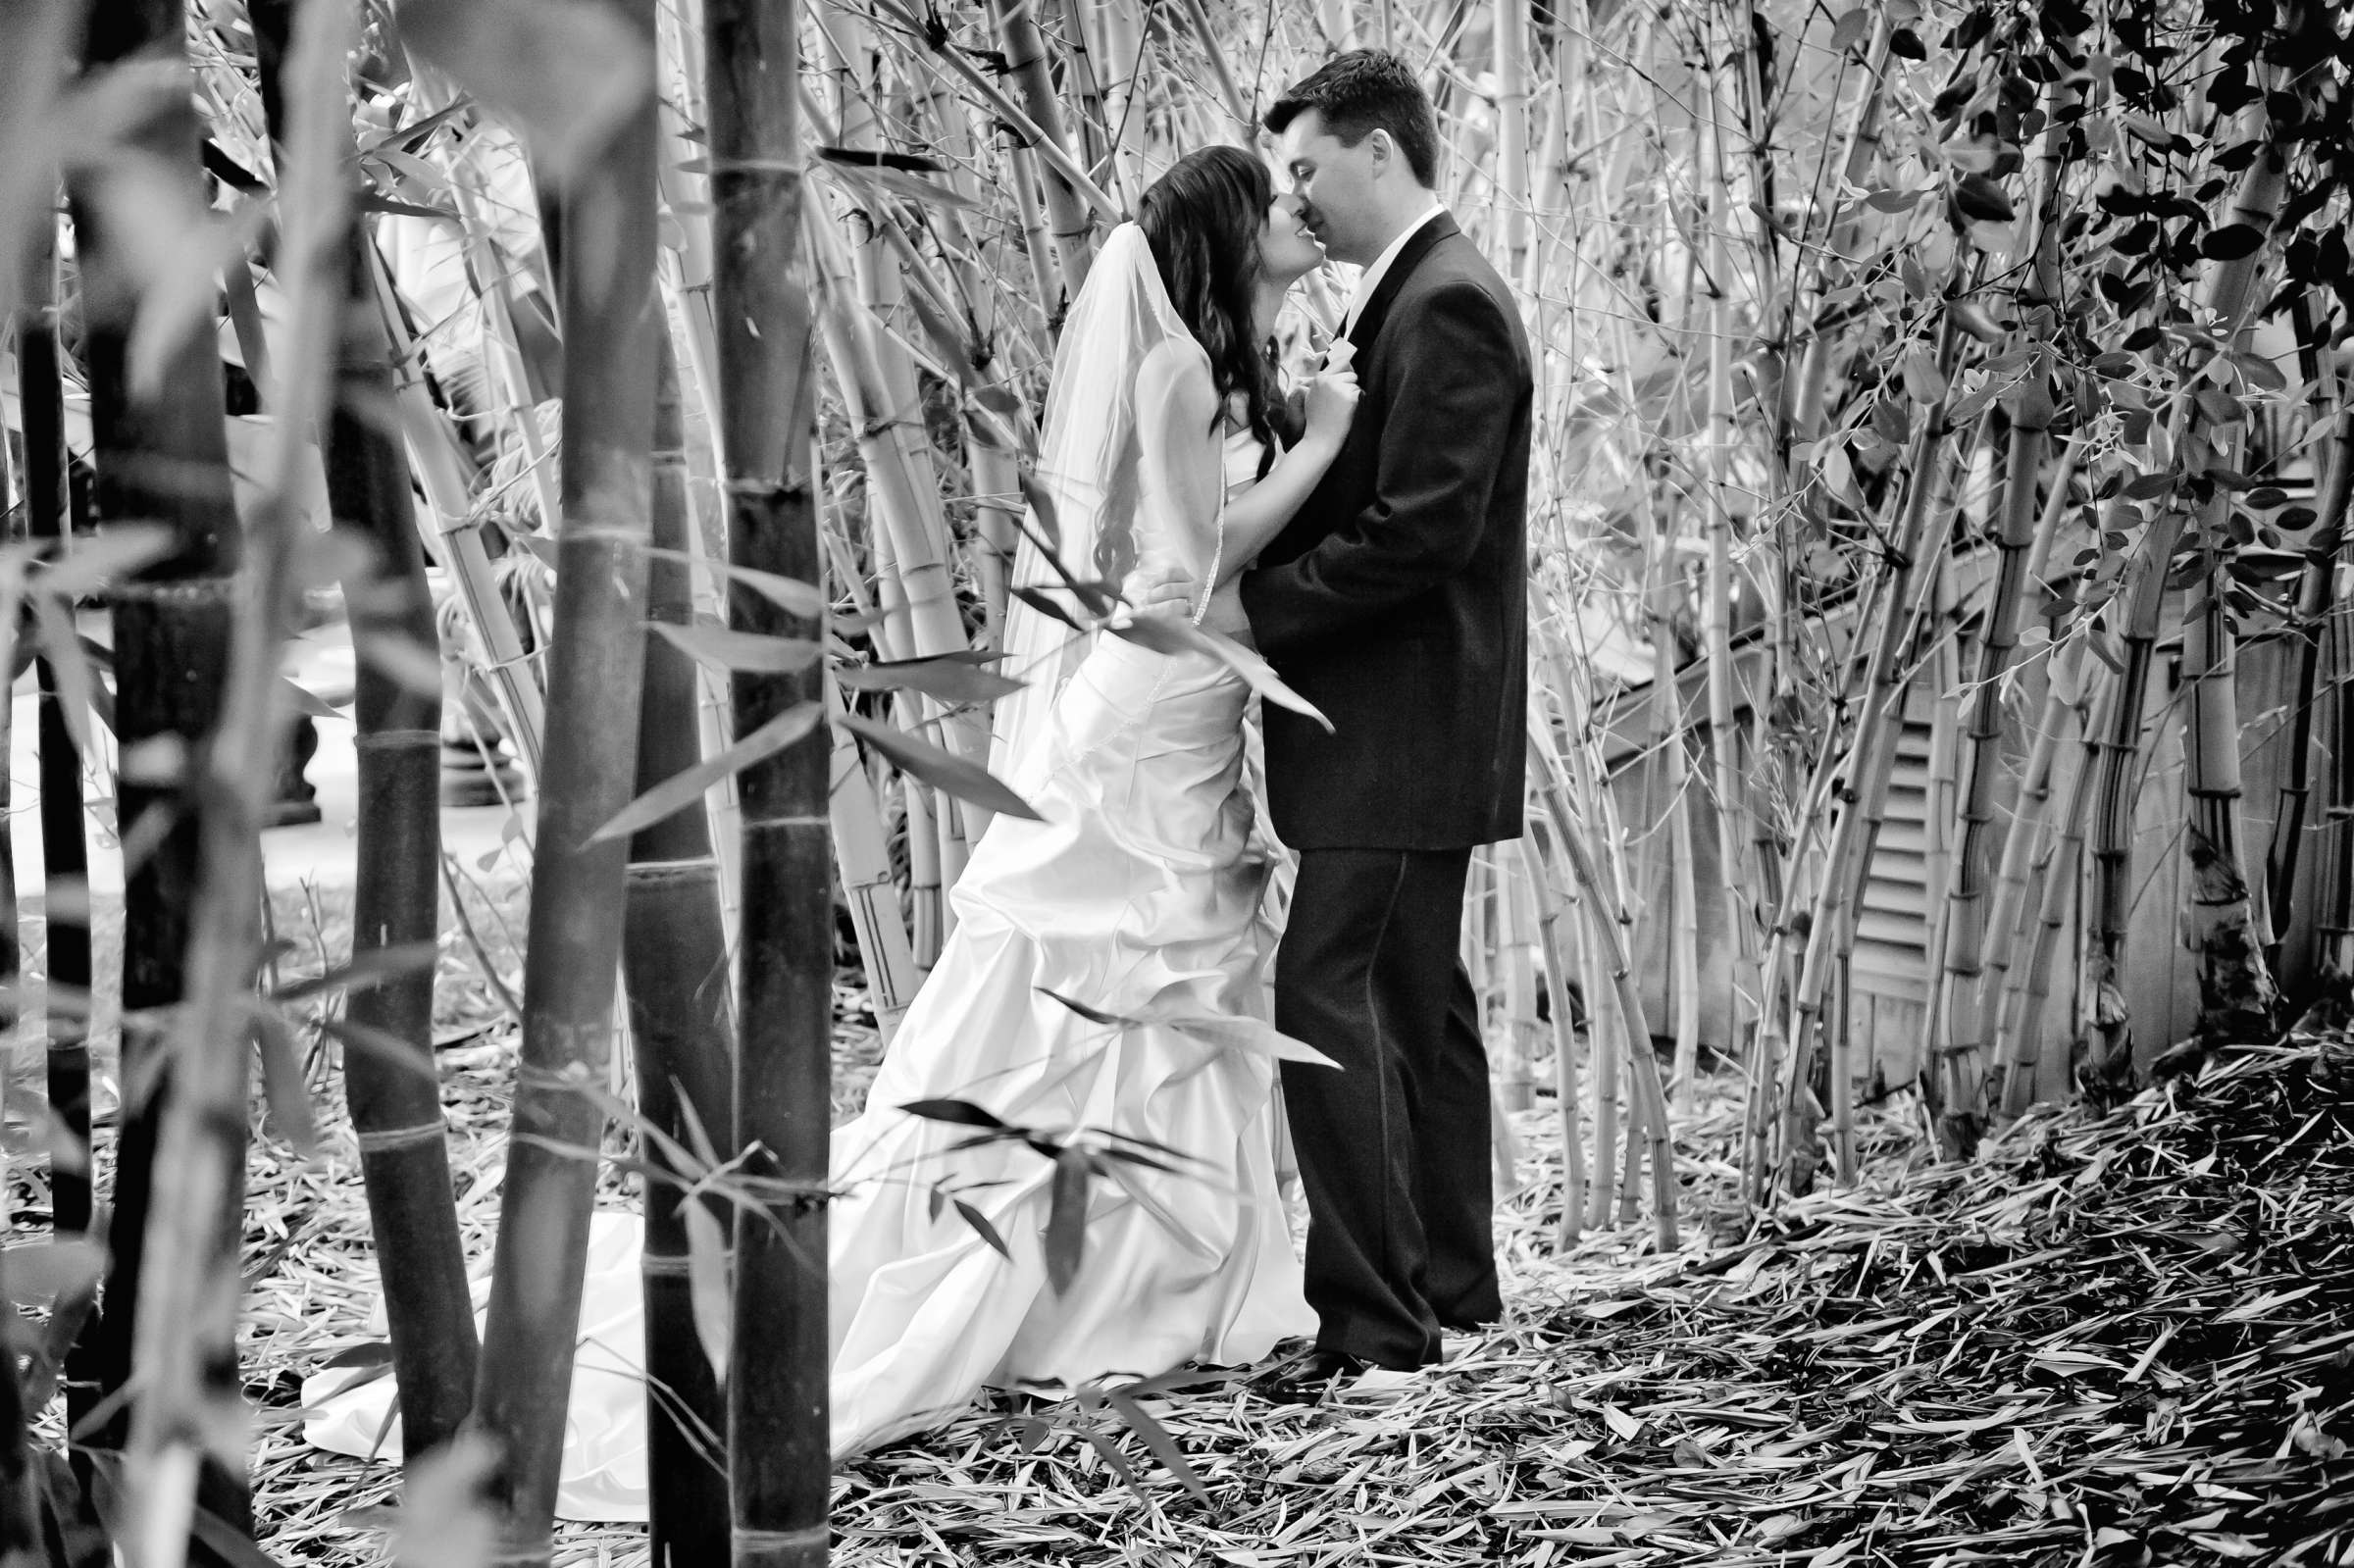 Grand Tradition Estate Wedding, Sharlene and Tony Wedding Photo #319468 by True Photography